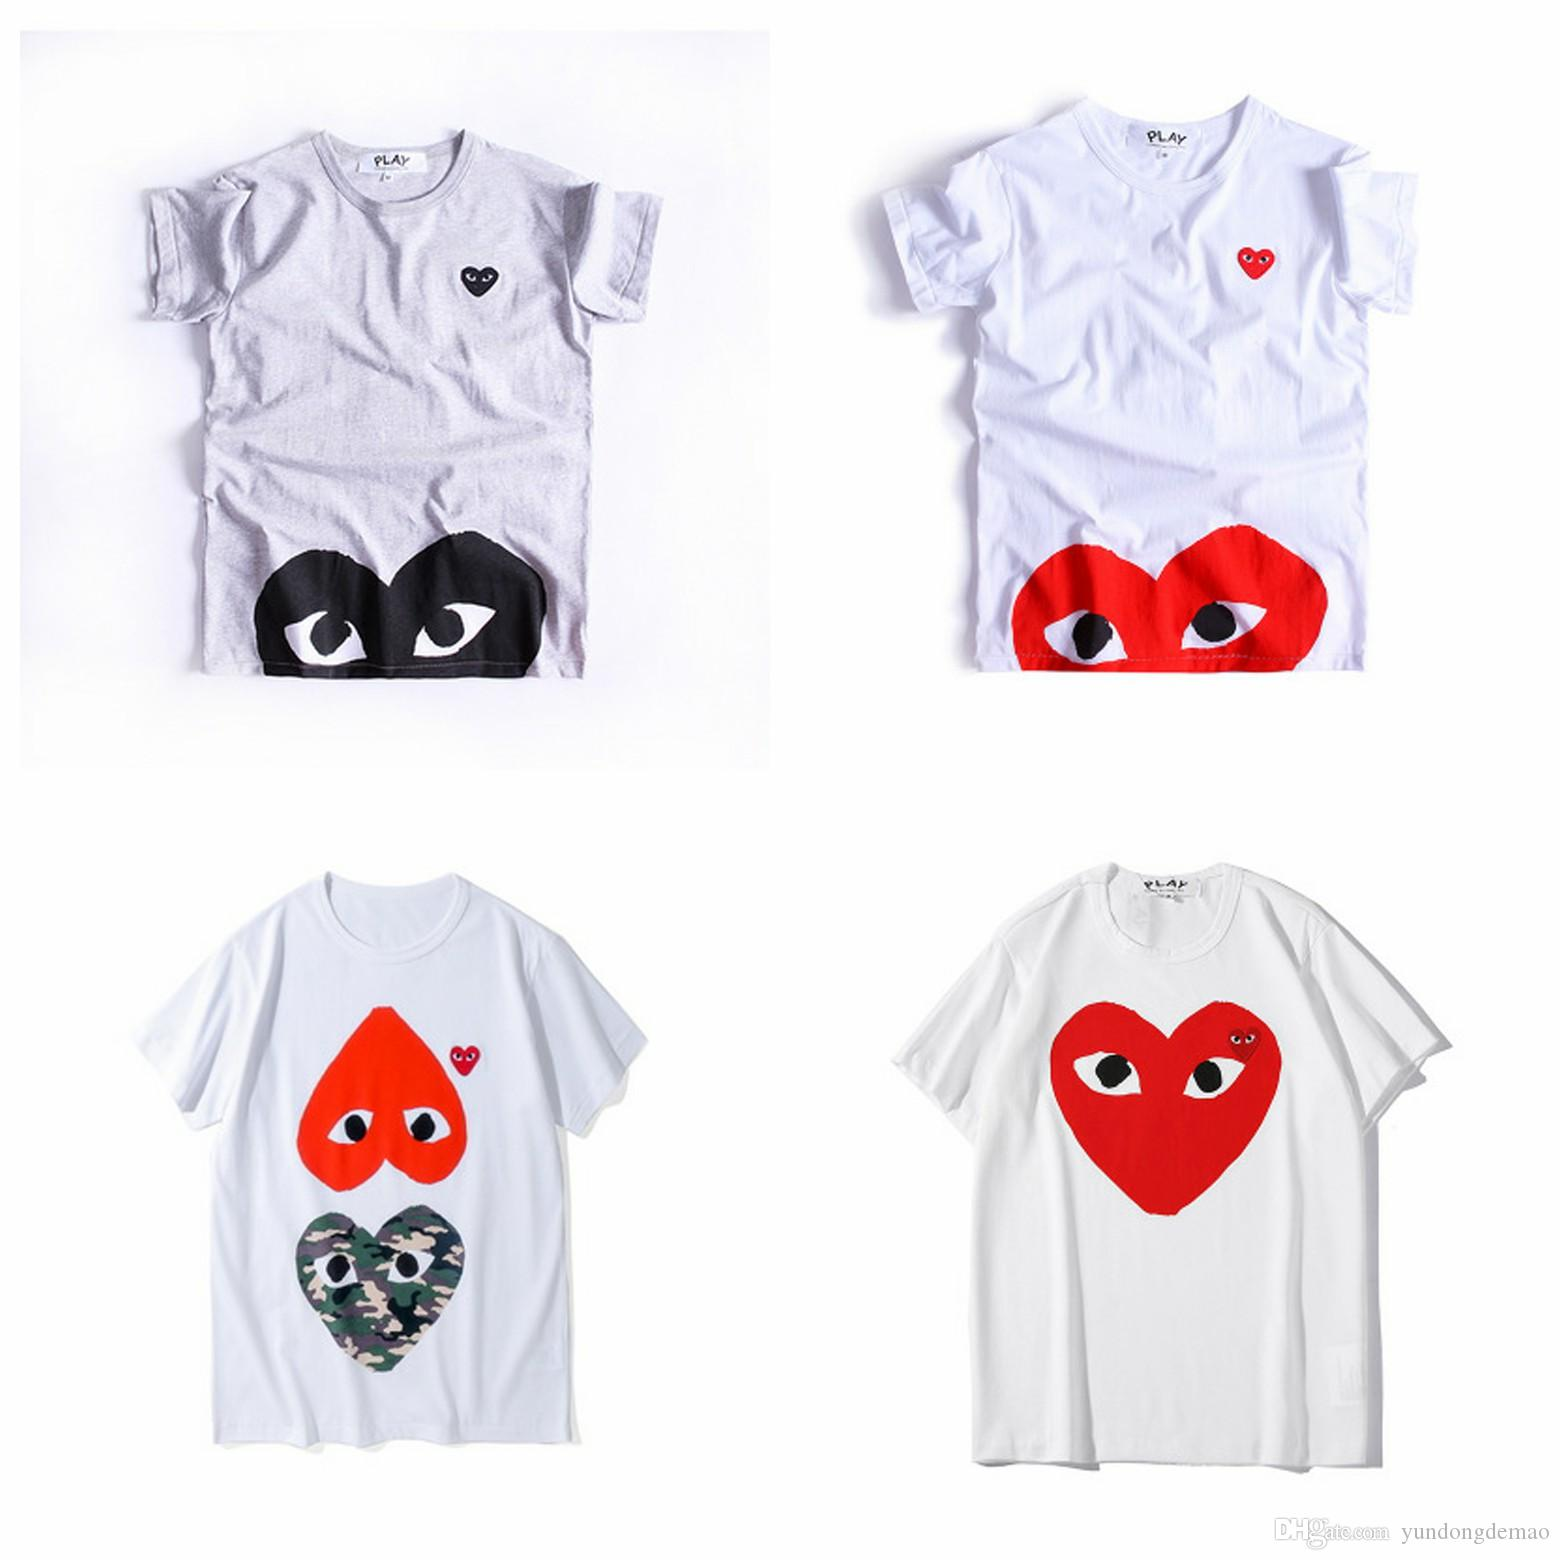 Lover Best Quality HOLIDAY White Green deformation Heart Emoji PLAY TEE Limited Big Red Heart Splashing PLAY Tee